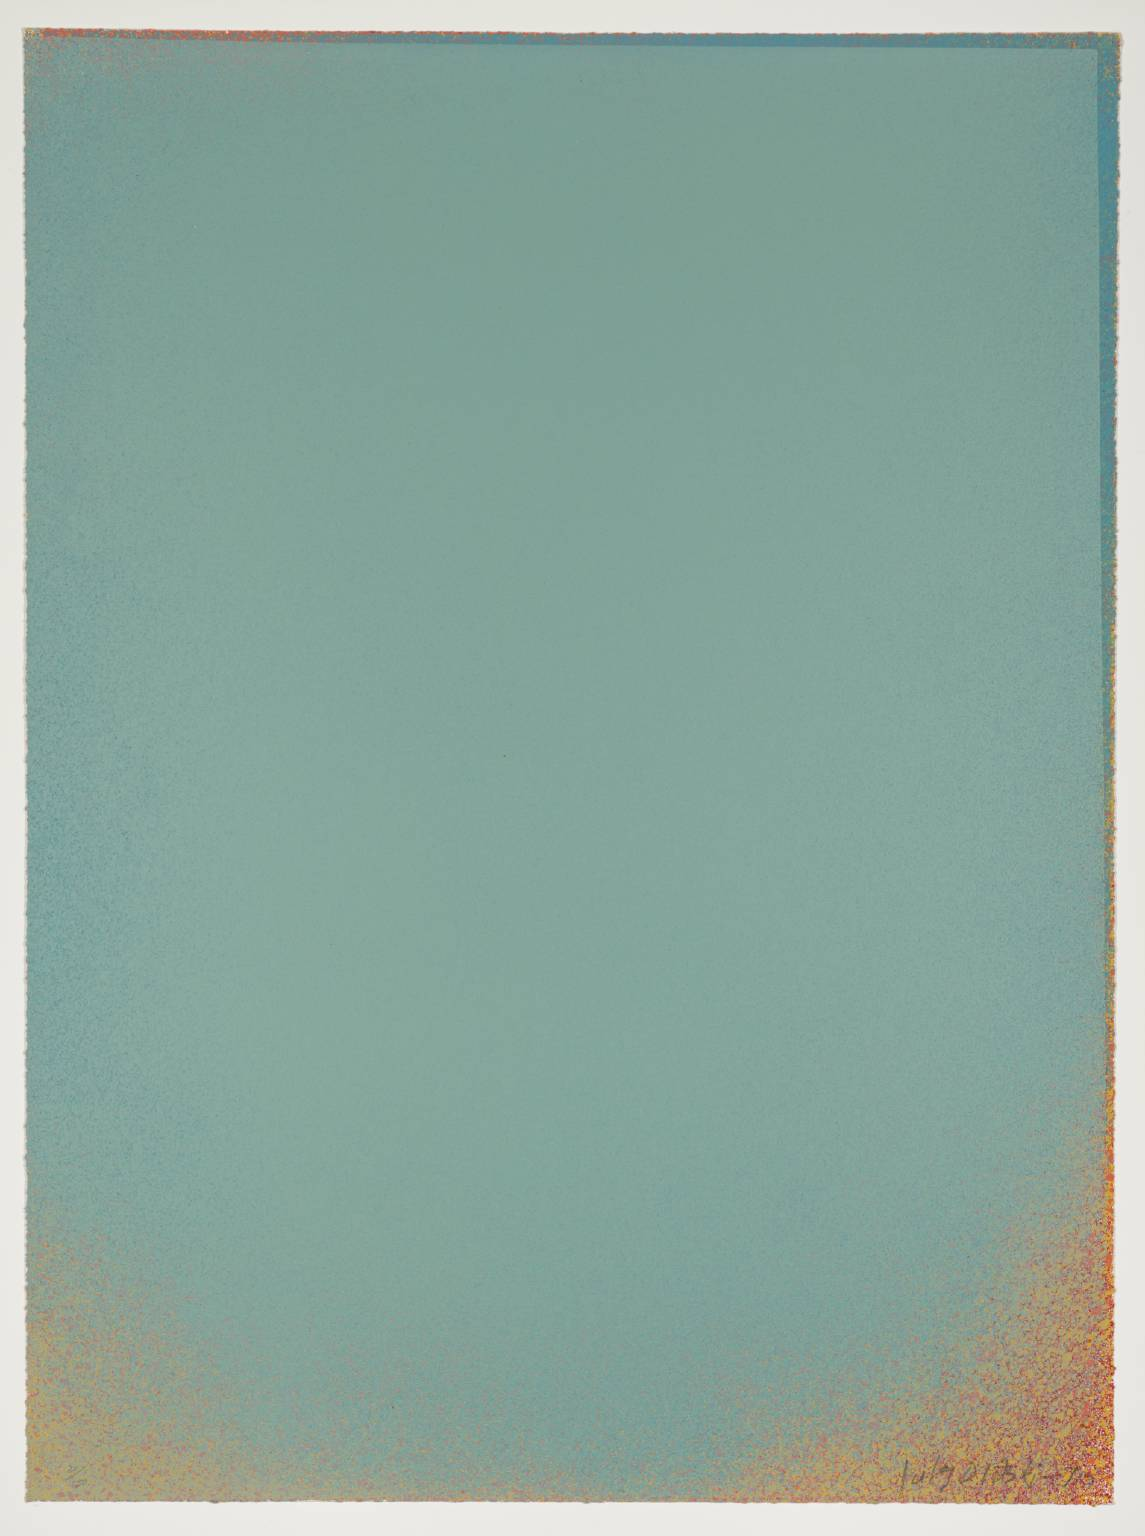 Pale Blue with Blue and Red, 1970, 88.9 x 66.04 cm